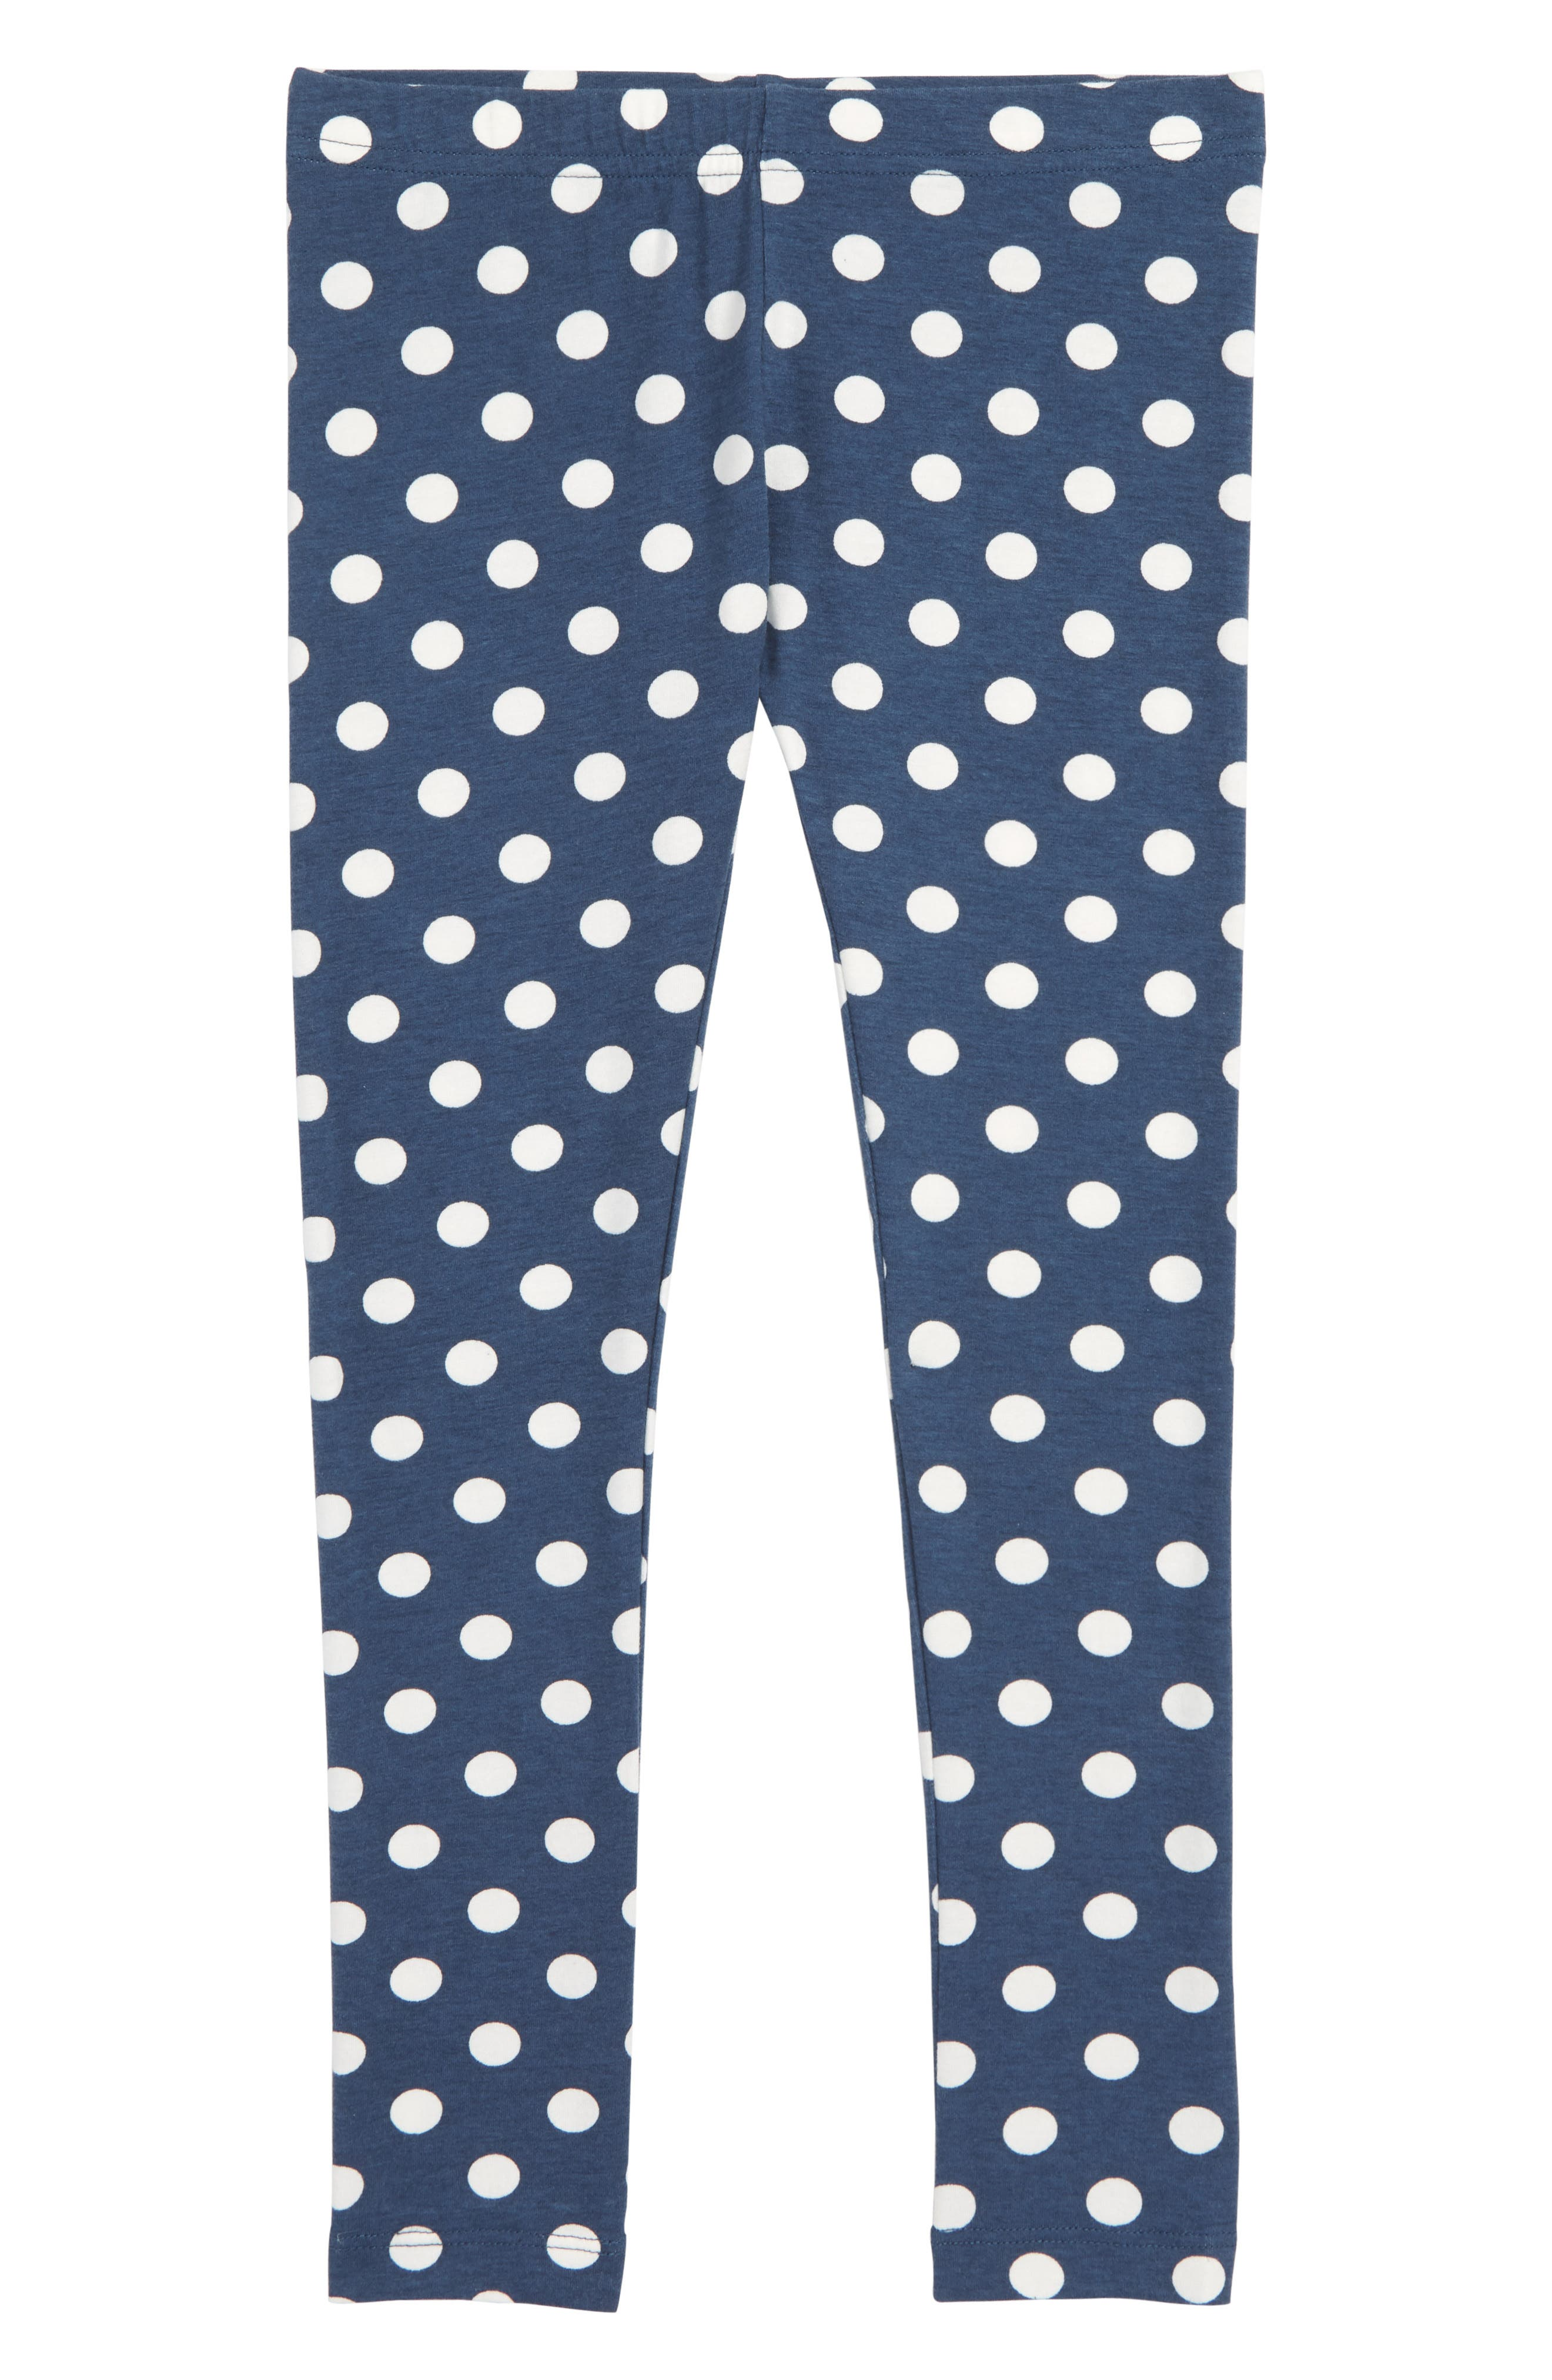 TUCKER + TATE 'Core' Print Leggings, Main, color, NAVY DENIM DOT